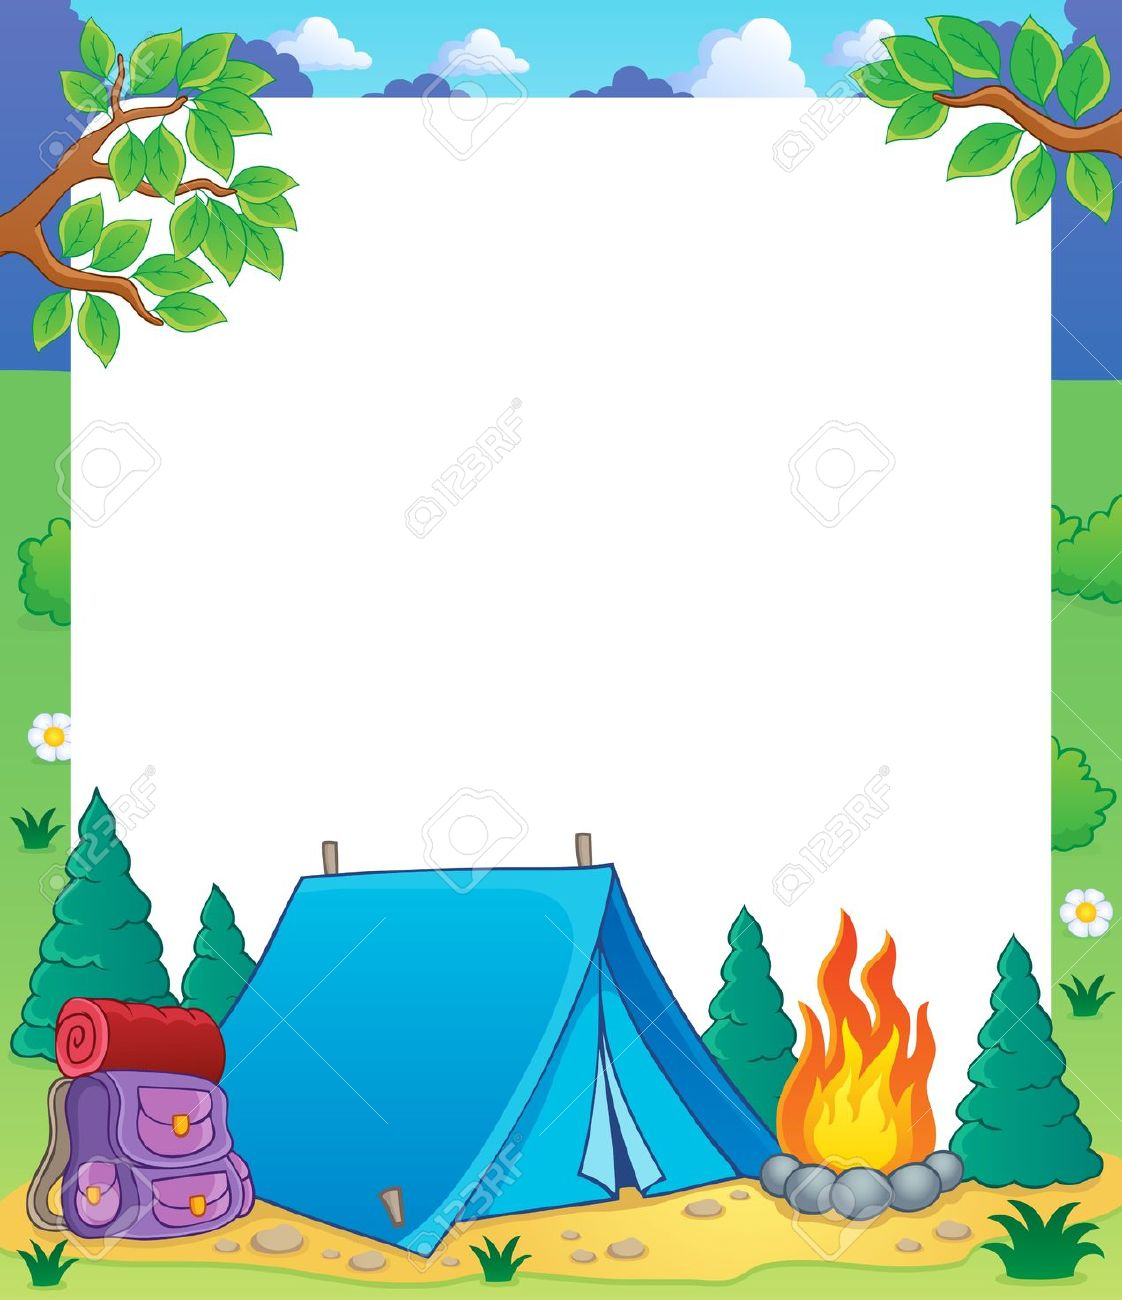 Camping background images clipart jpg Camping background clipart » Clipart Station jpg